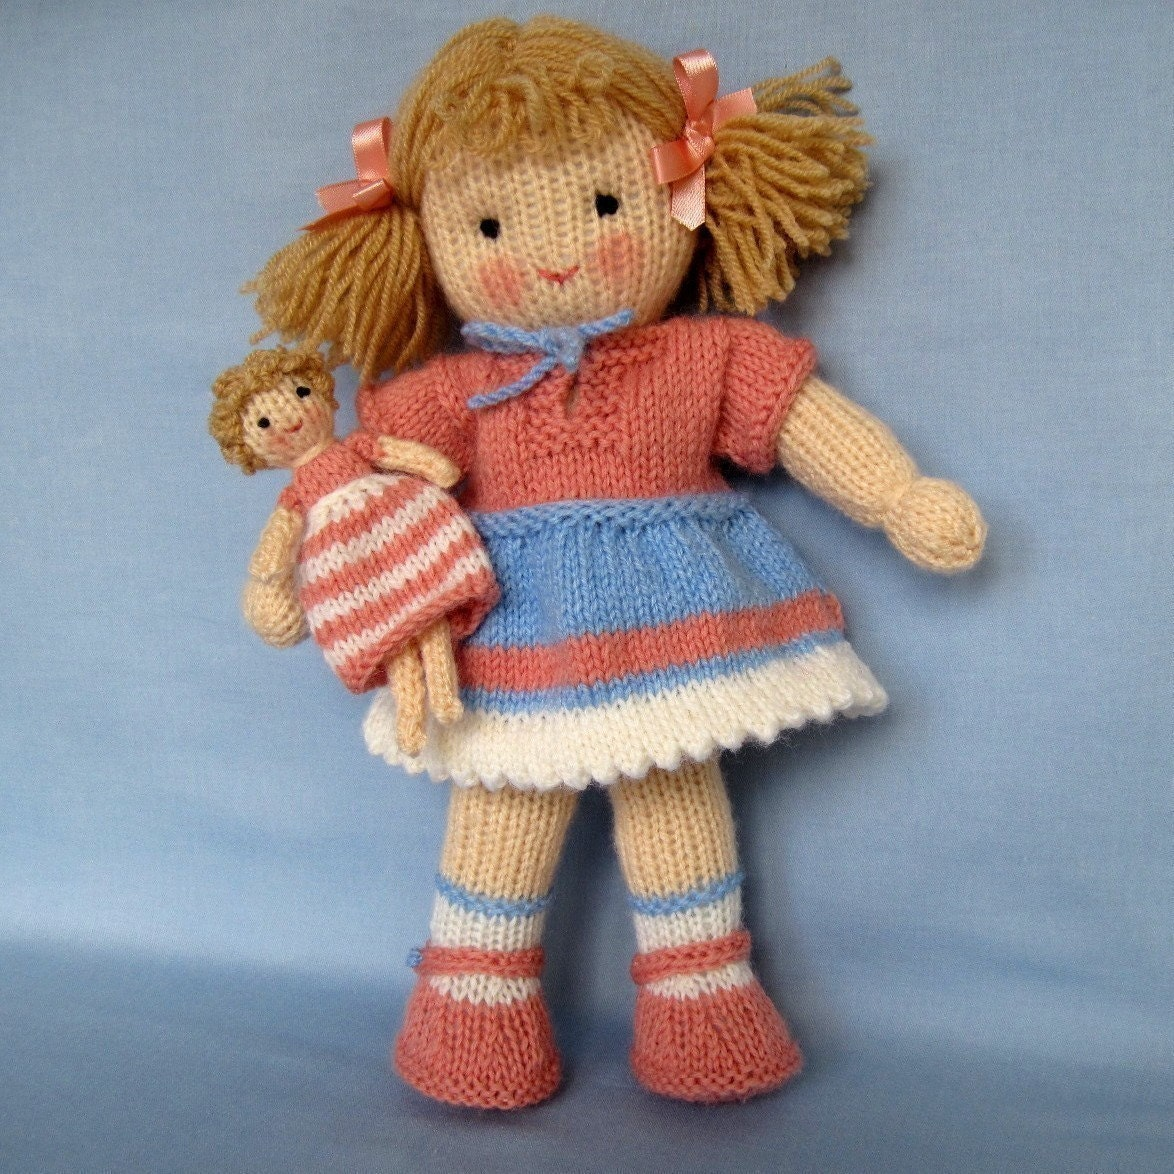 Wendy Knitting Patterns For Dolls : LULU and TINY DOLL knitted toy doll PDF email by dollytime